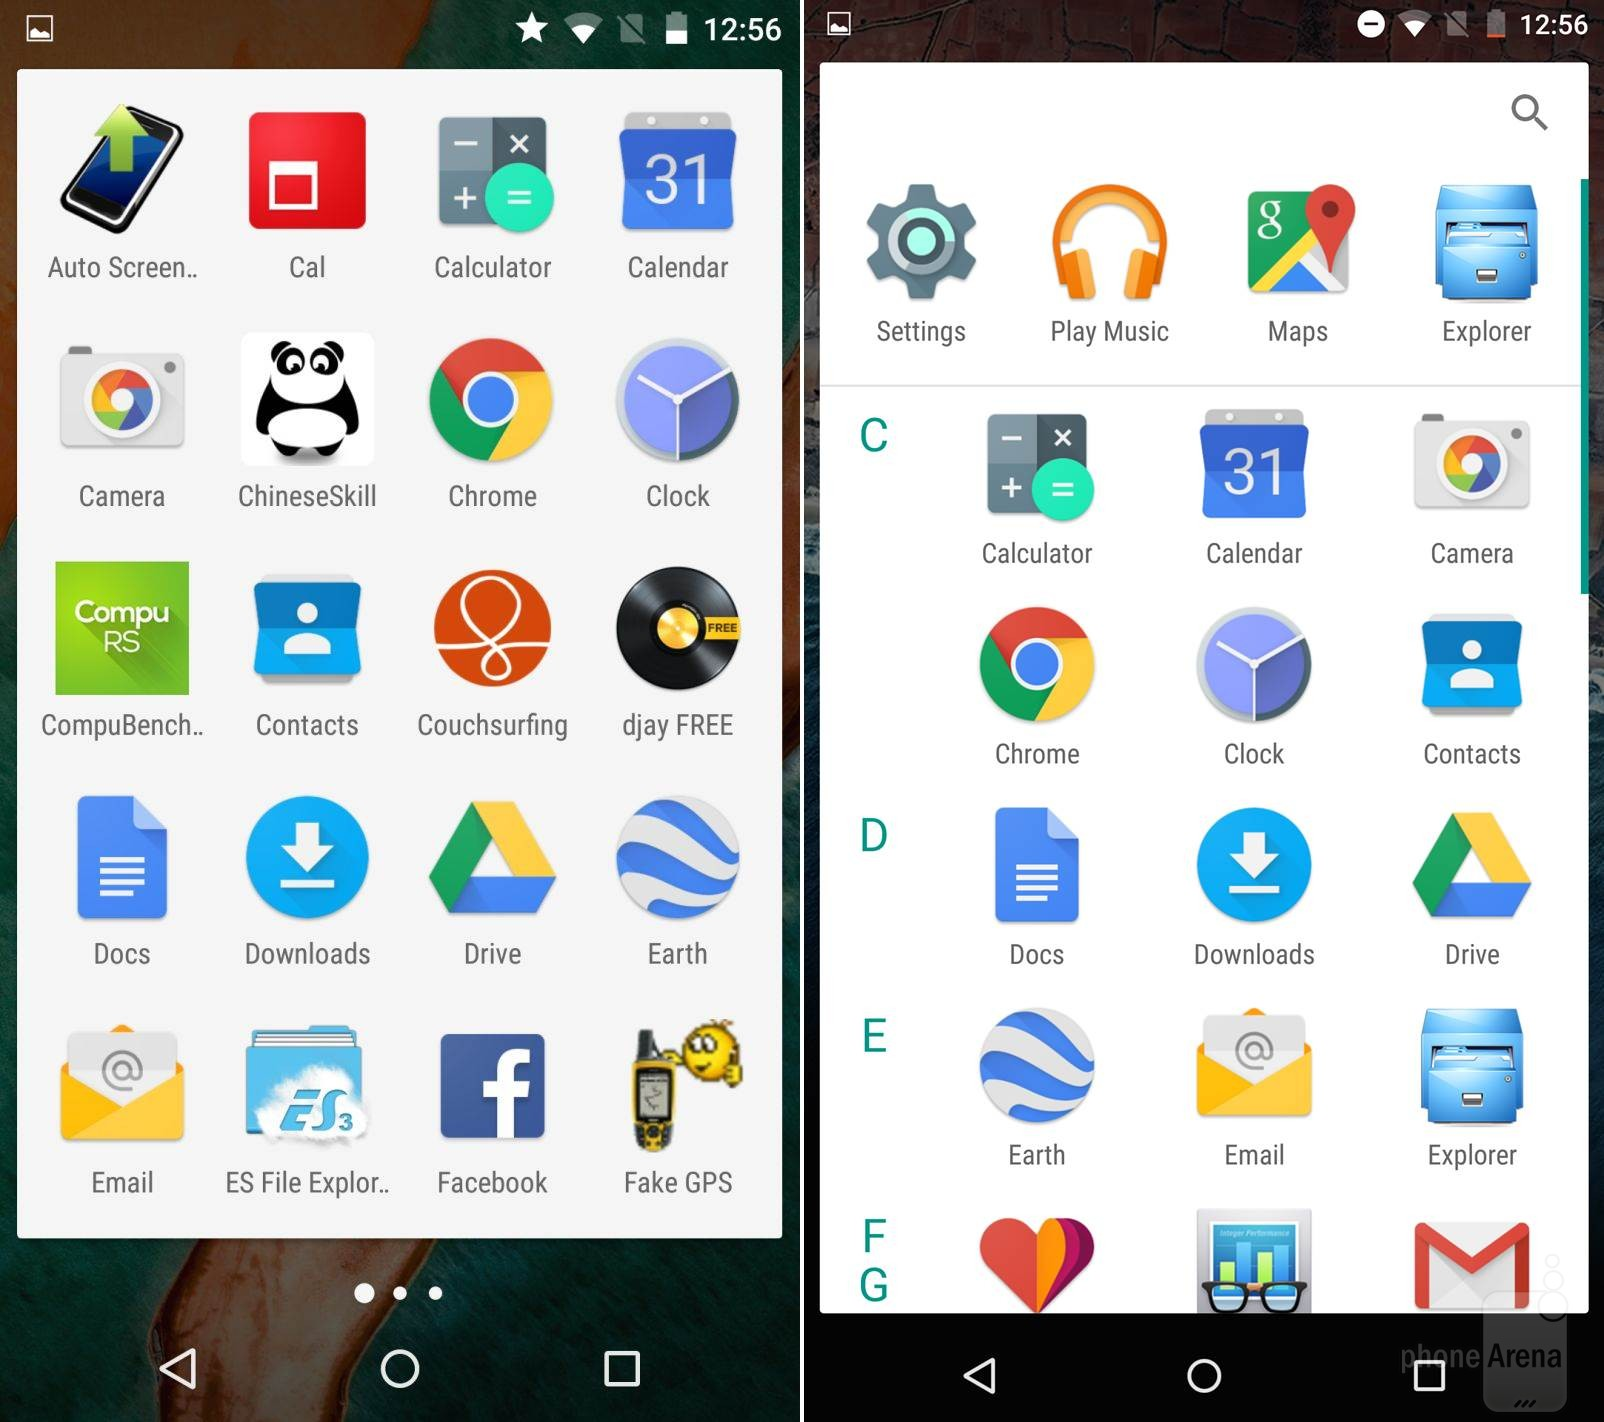 Android Marshmallow vs Android Lollipop